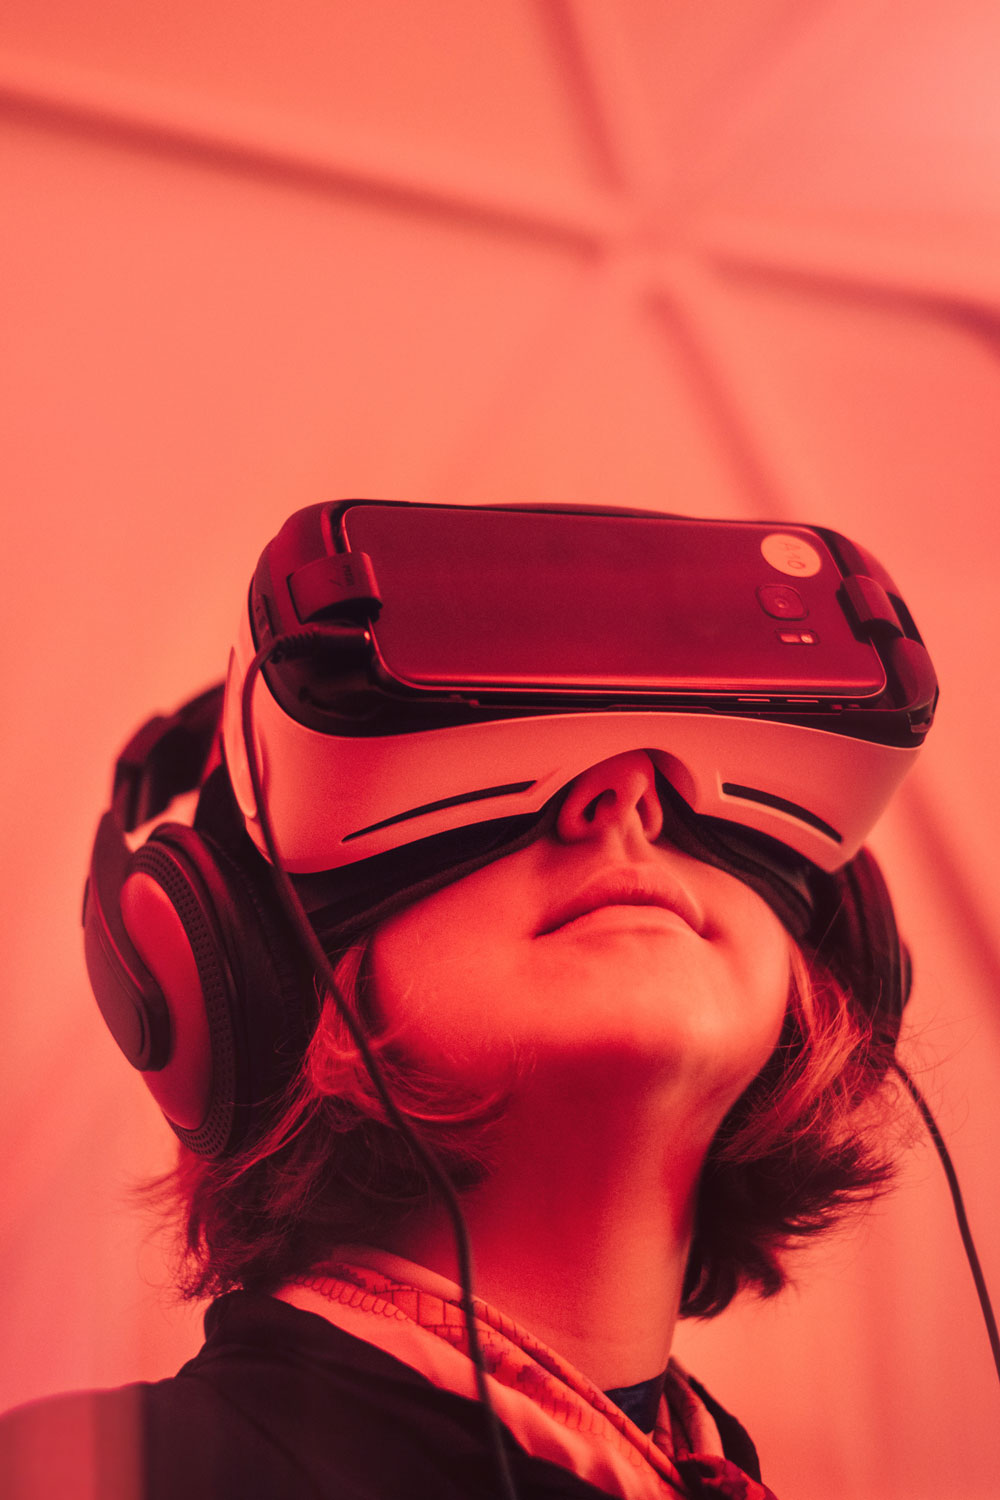 Virtual reality takes major leaps with the development of VR machines